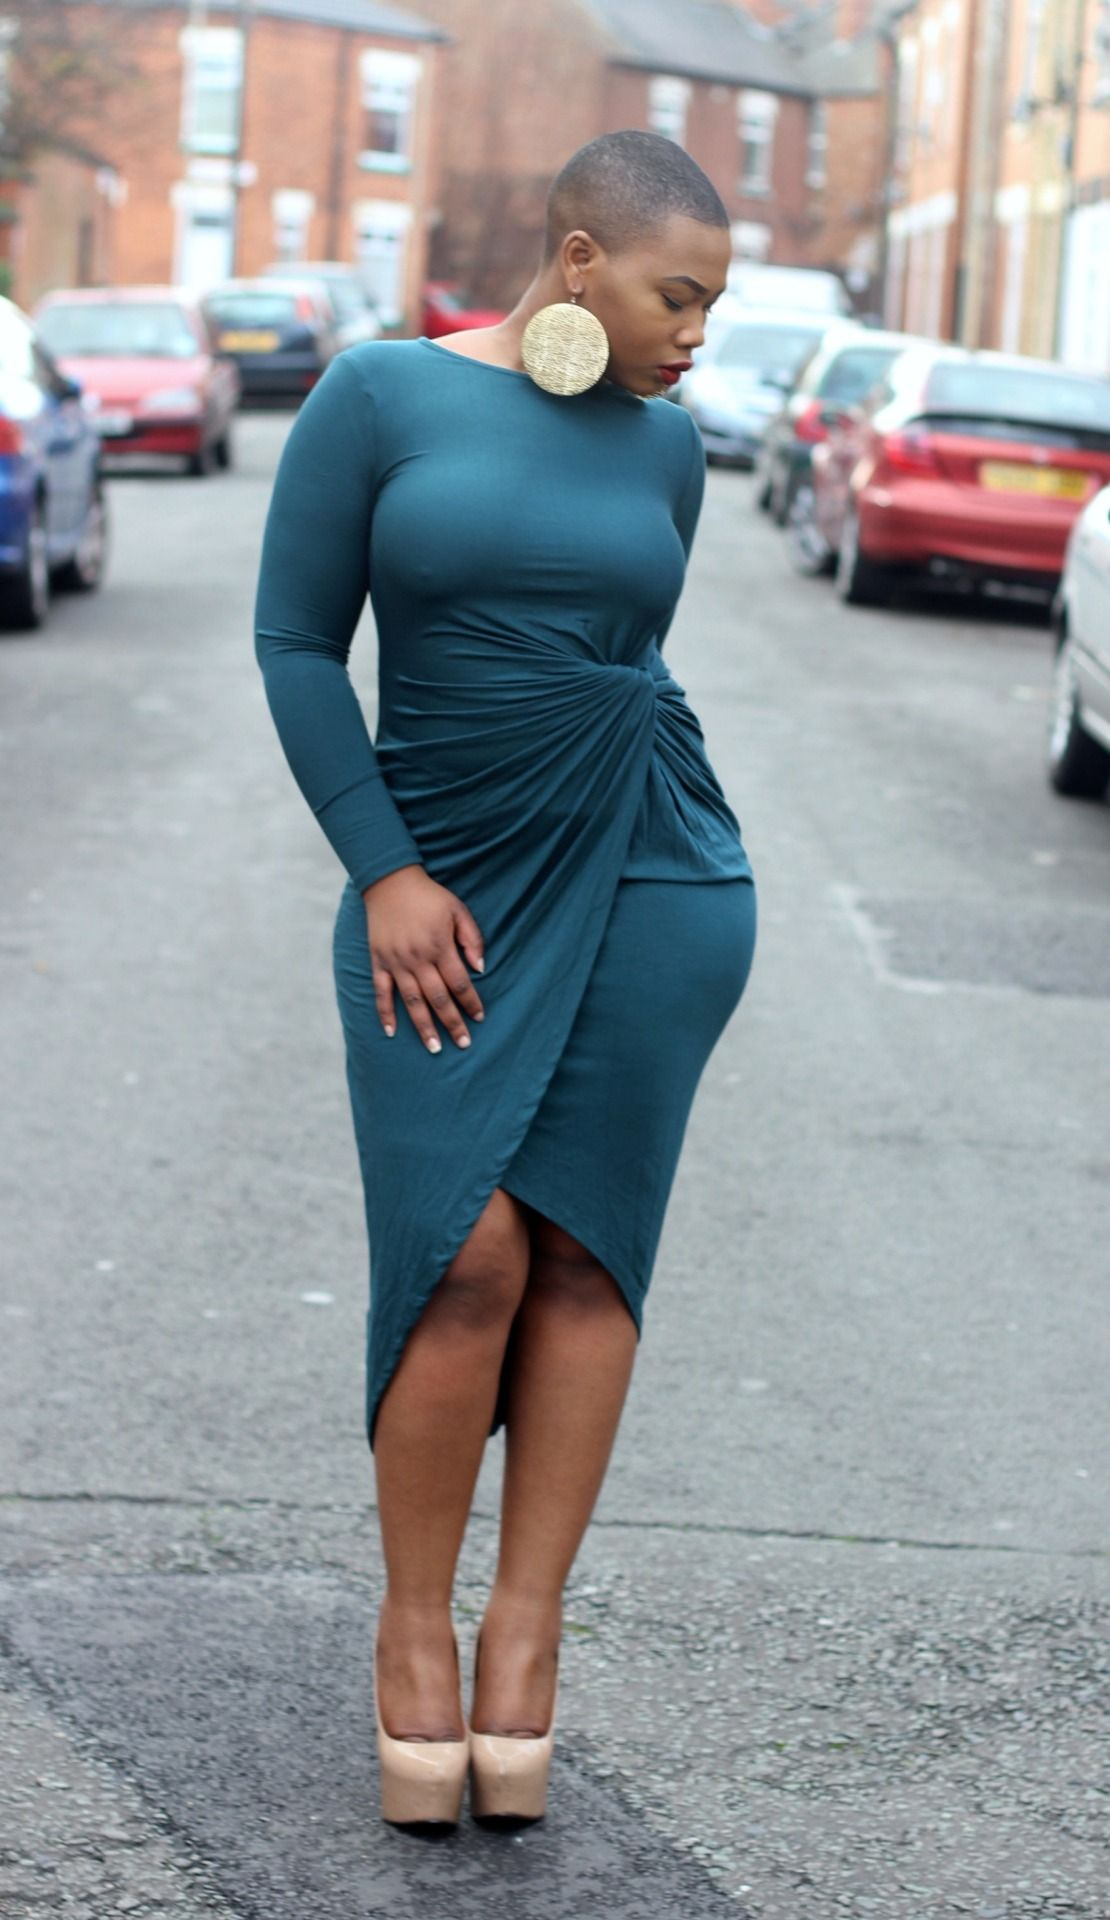 d6f482f0993 Asymmetrical Hems Round Neck Plus Size Bodycon Dress. Love this dress.  Perfect fit.